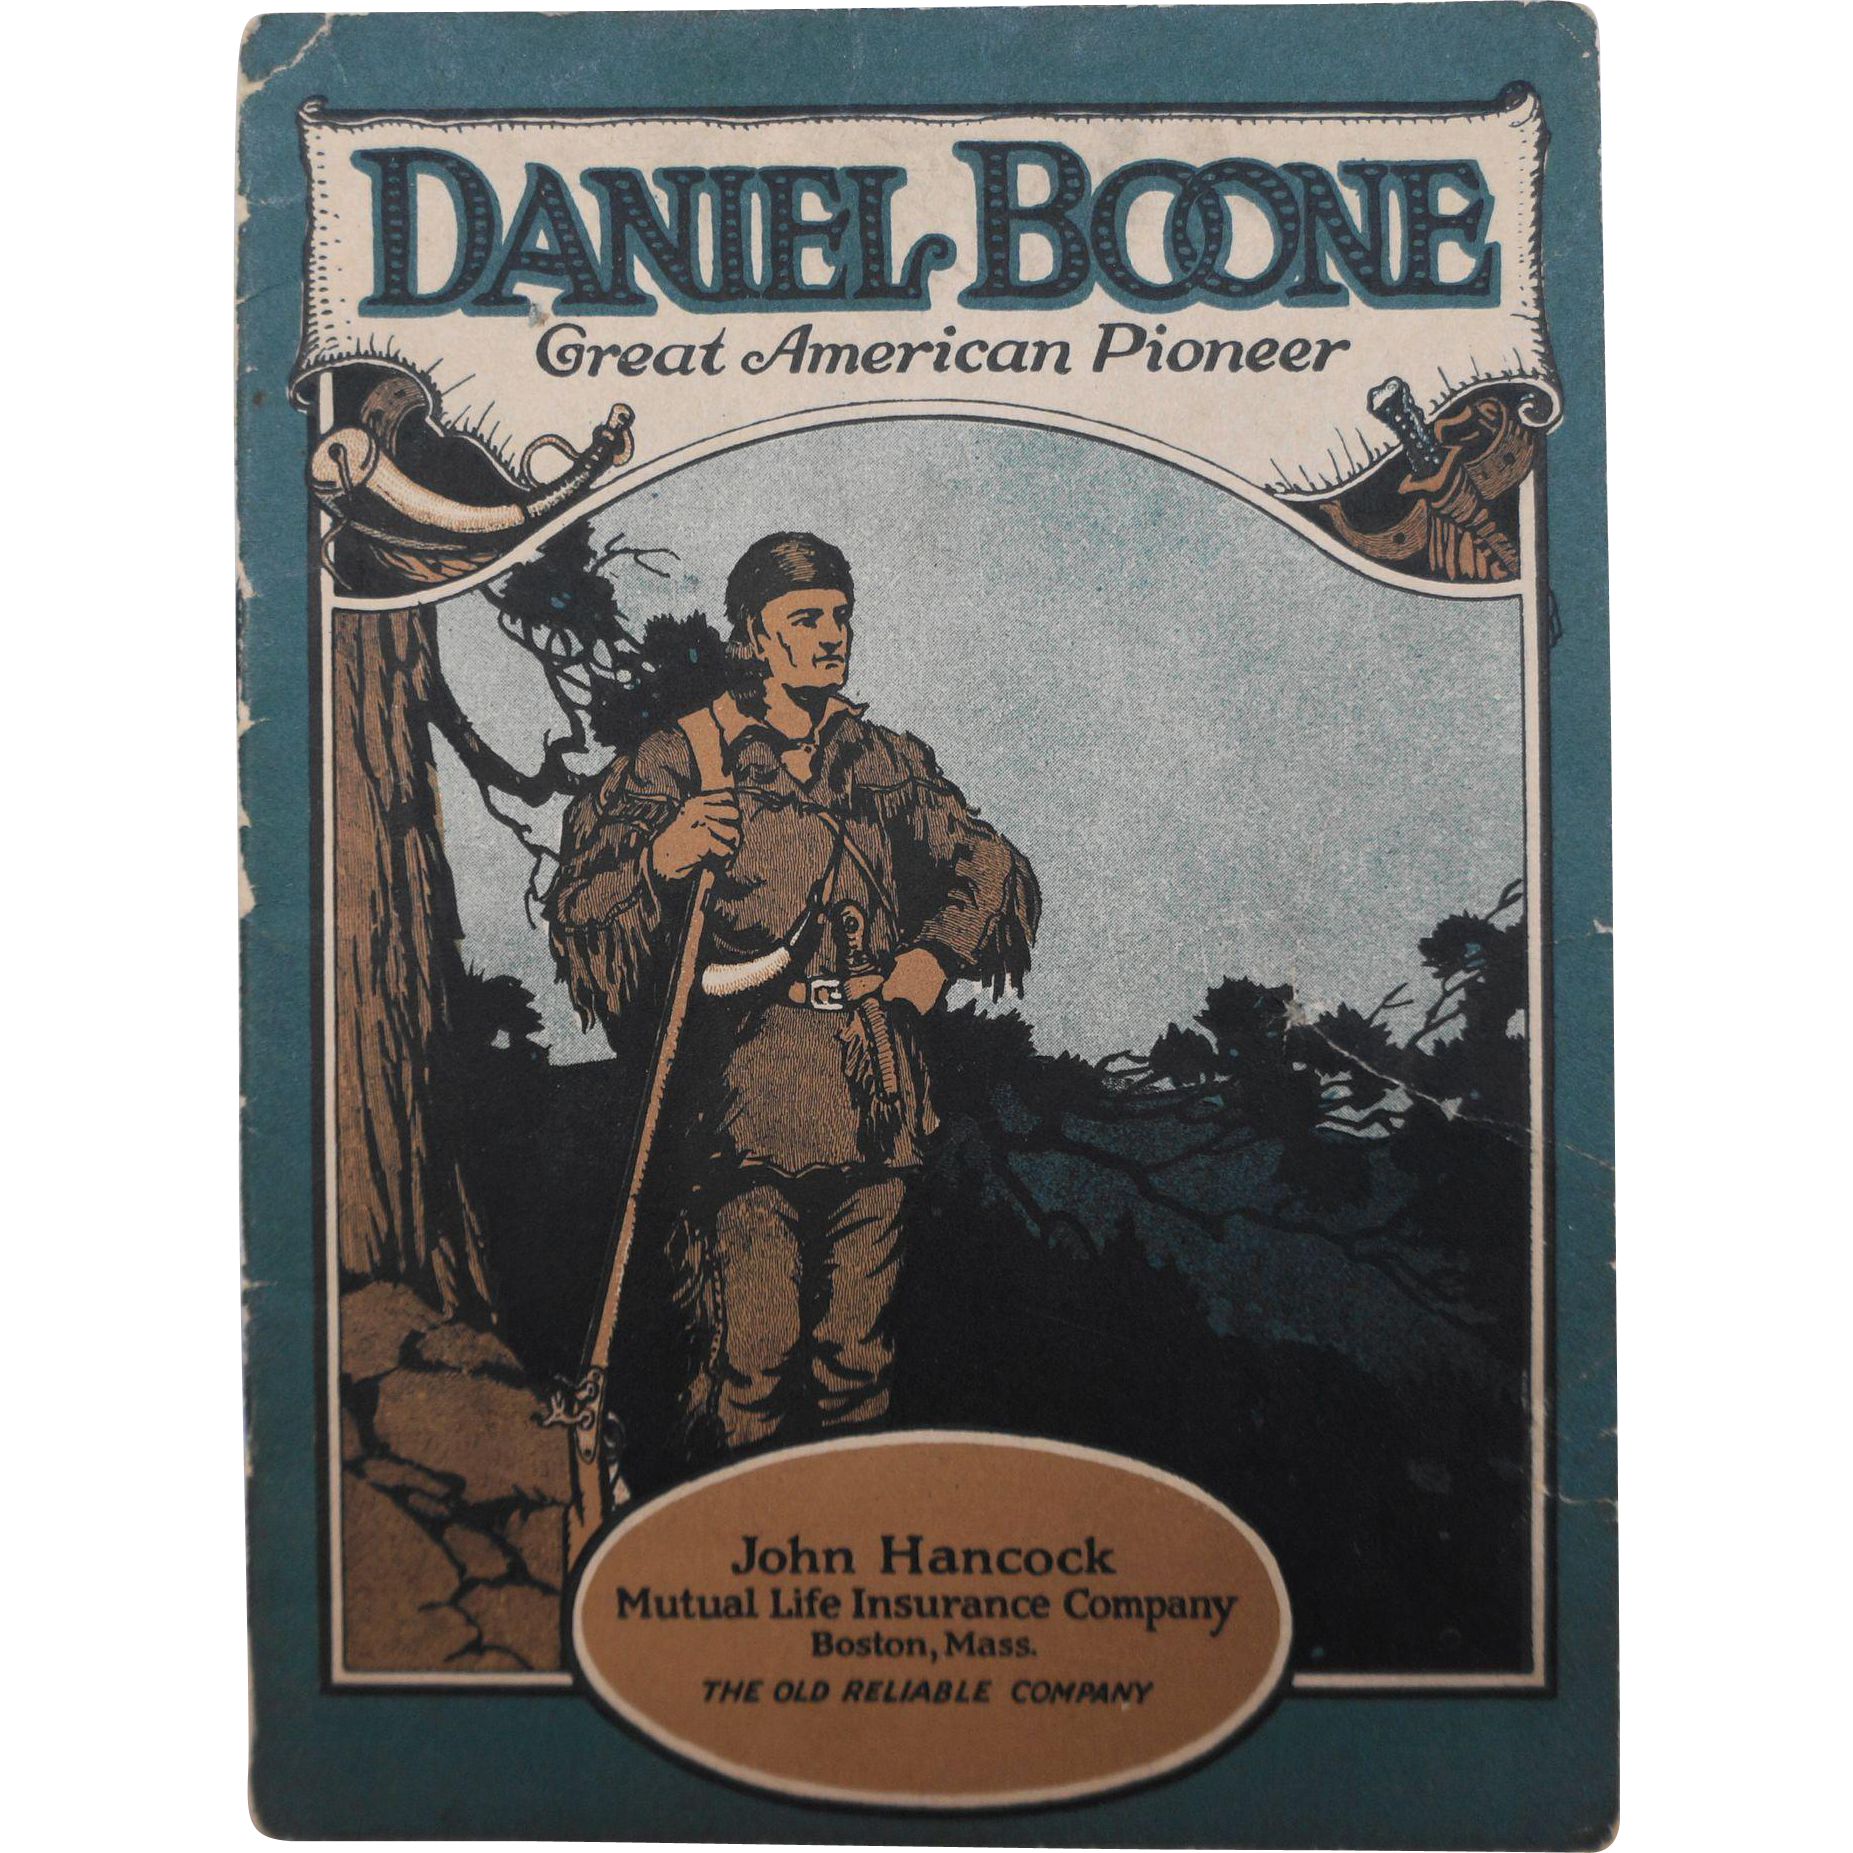 Daniel Boone Great American Pioneer Biographical Booklet John Hancock Insurance Co